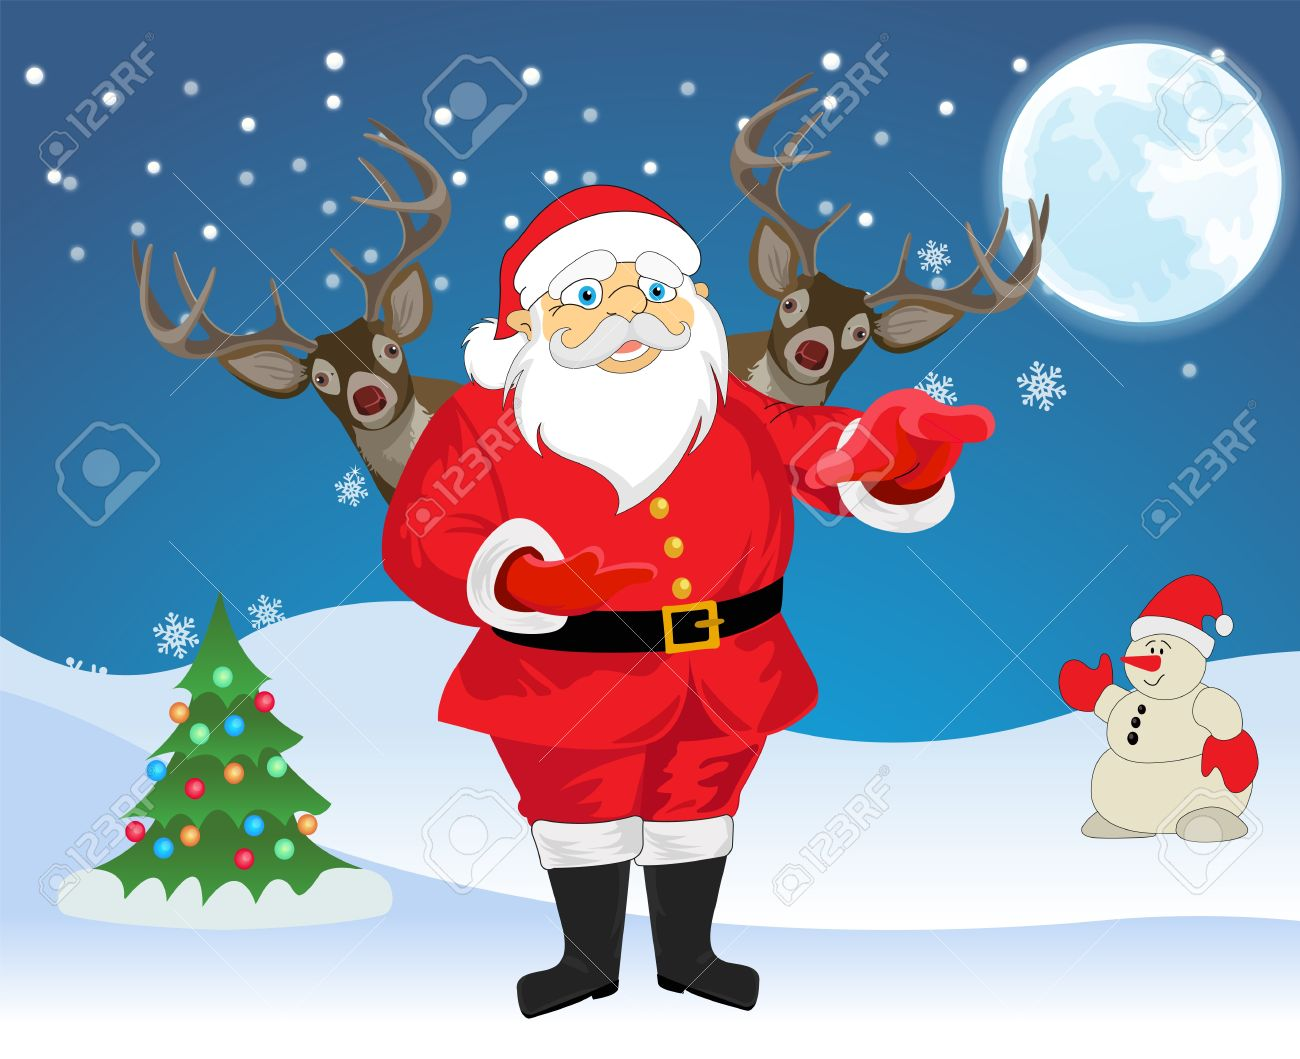 santa claus and 2 reindeer in blue and white background with christmas tree snowman - Santa Snowman 2